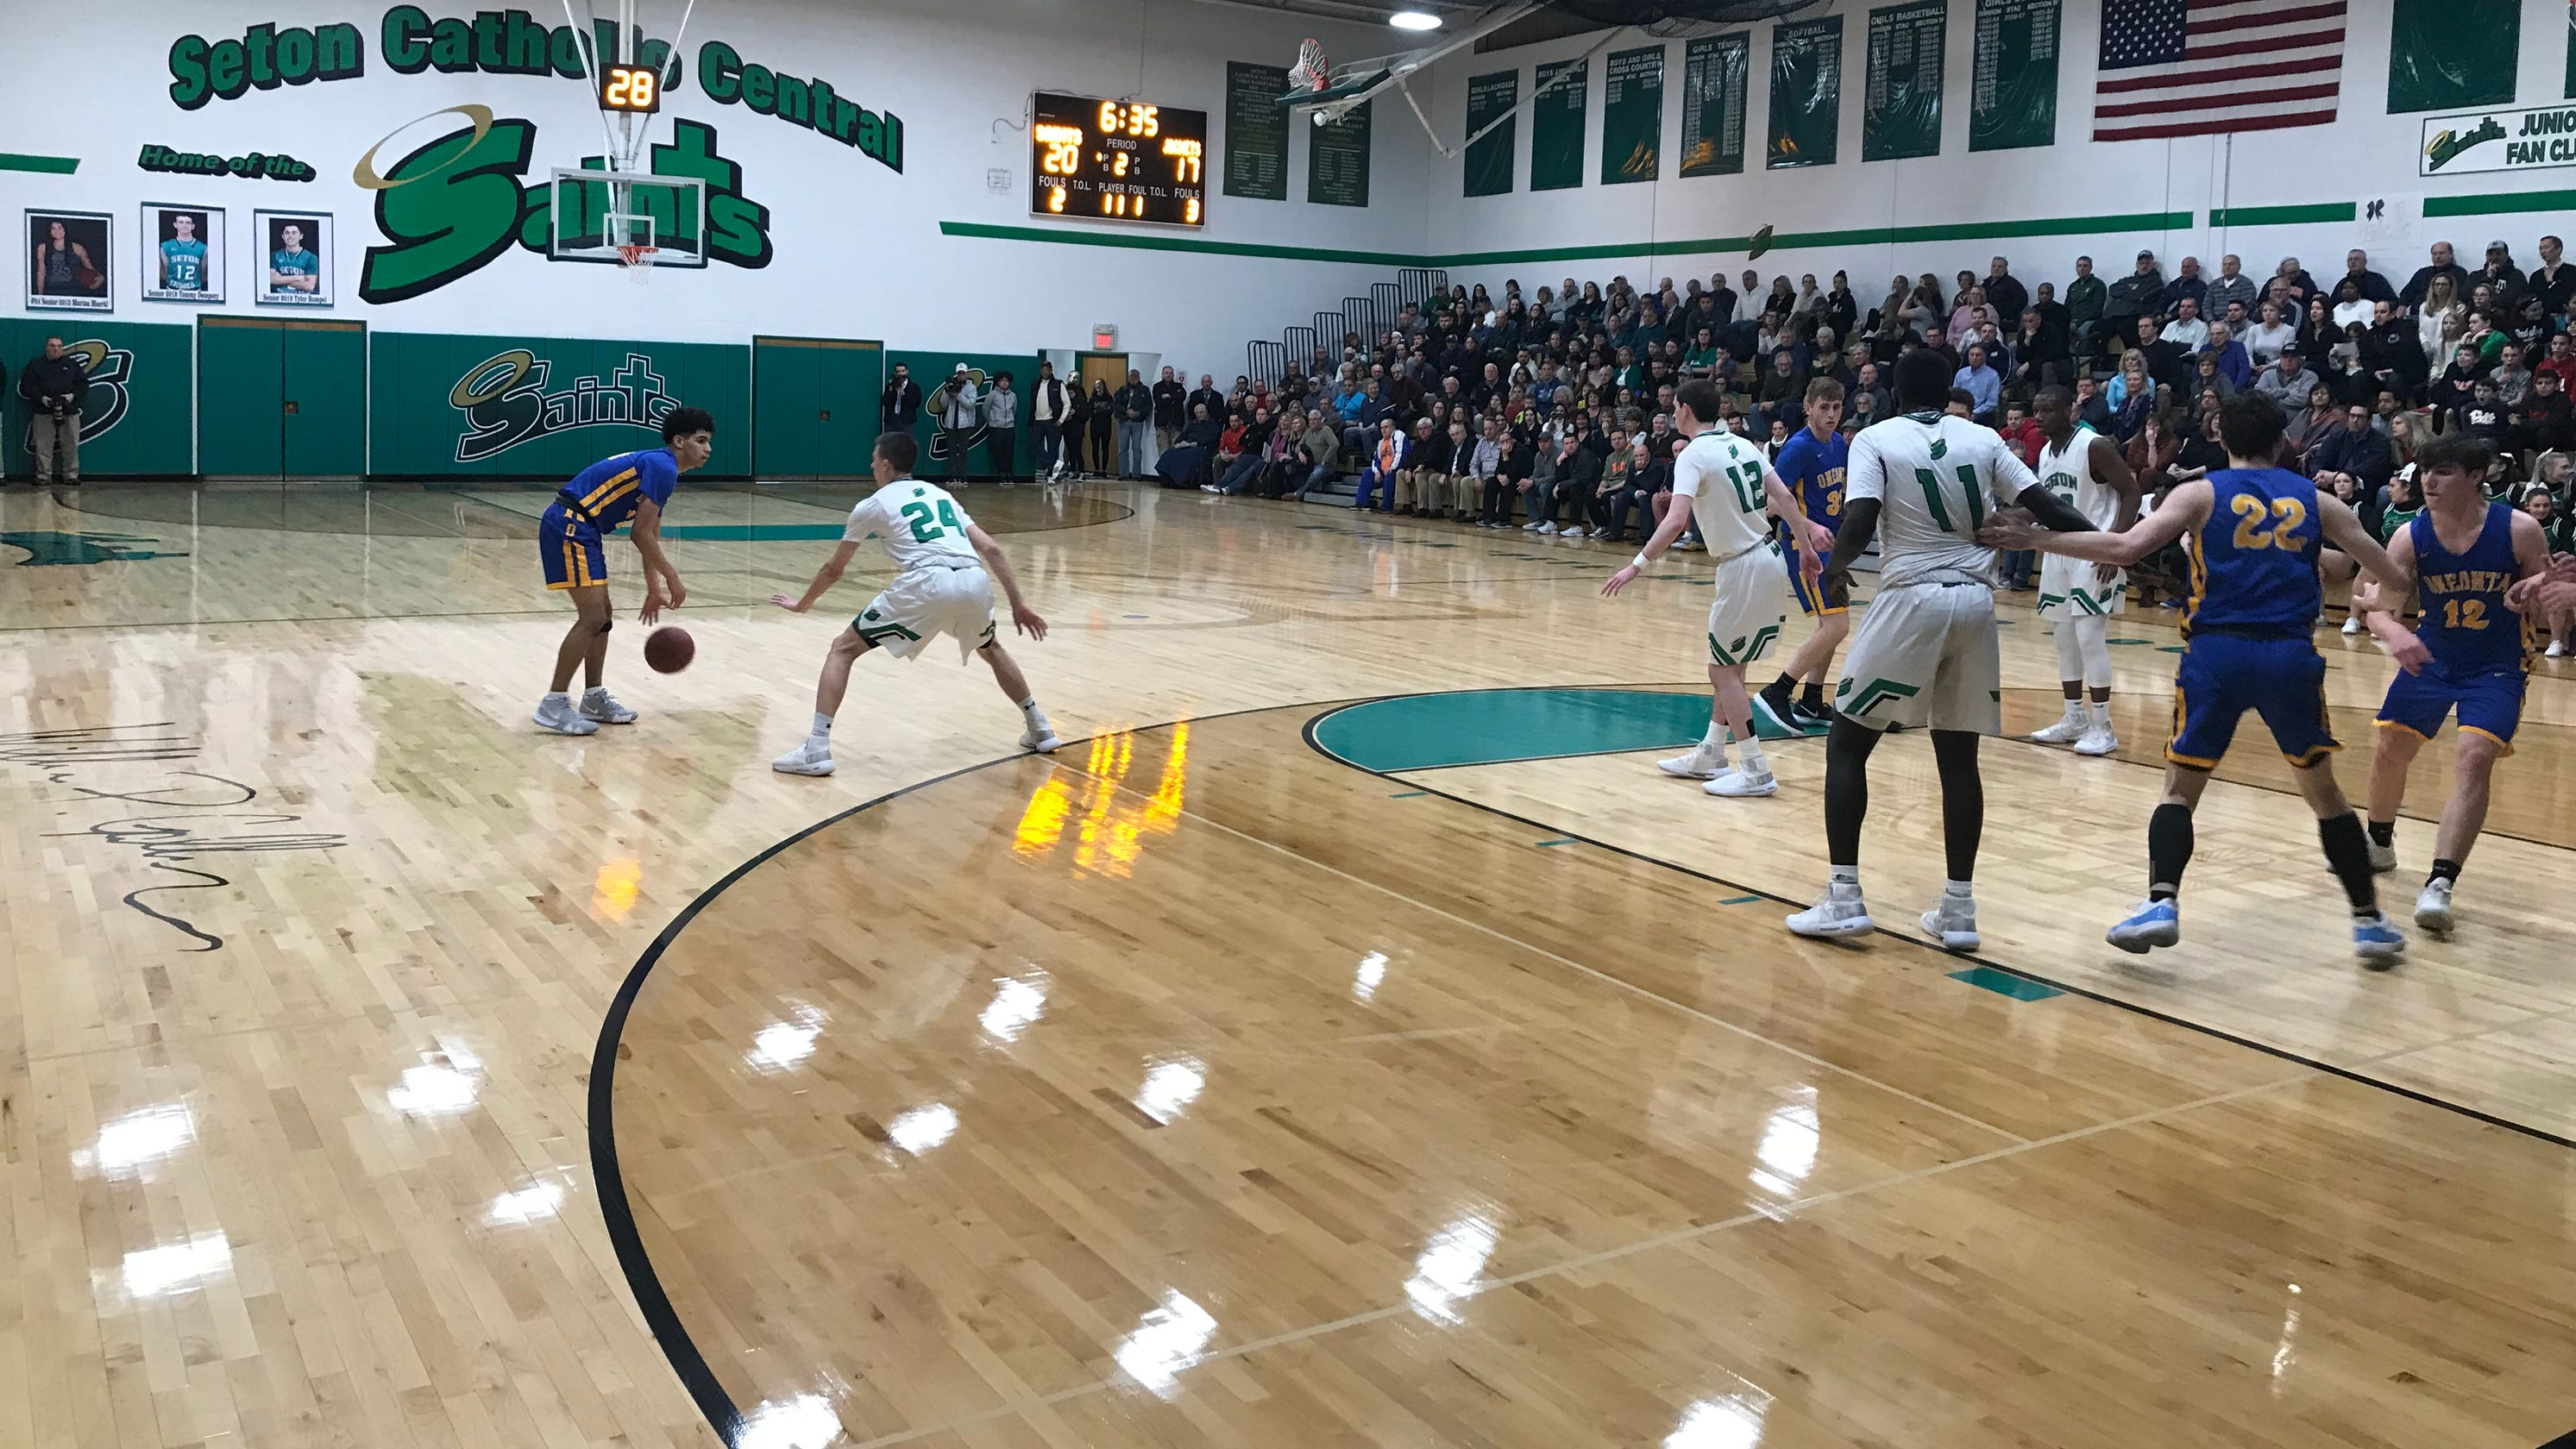 Oneonta Finals Schedule Fall 2019 Boys Basketball: Seton CC handles Oneonta on way to Section 4 'B